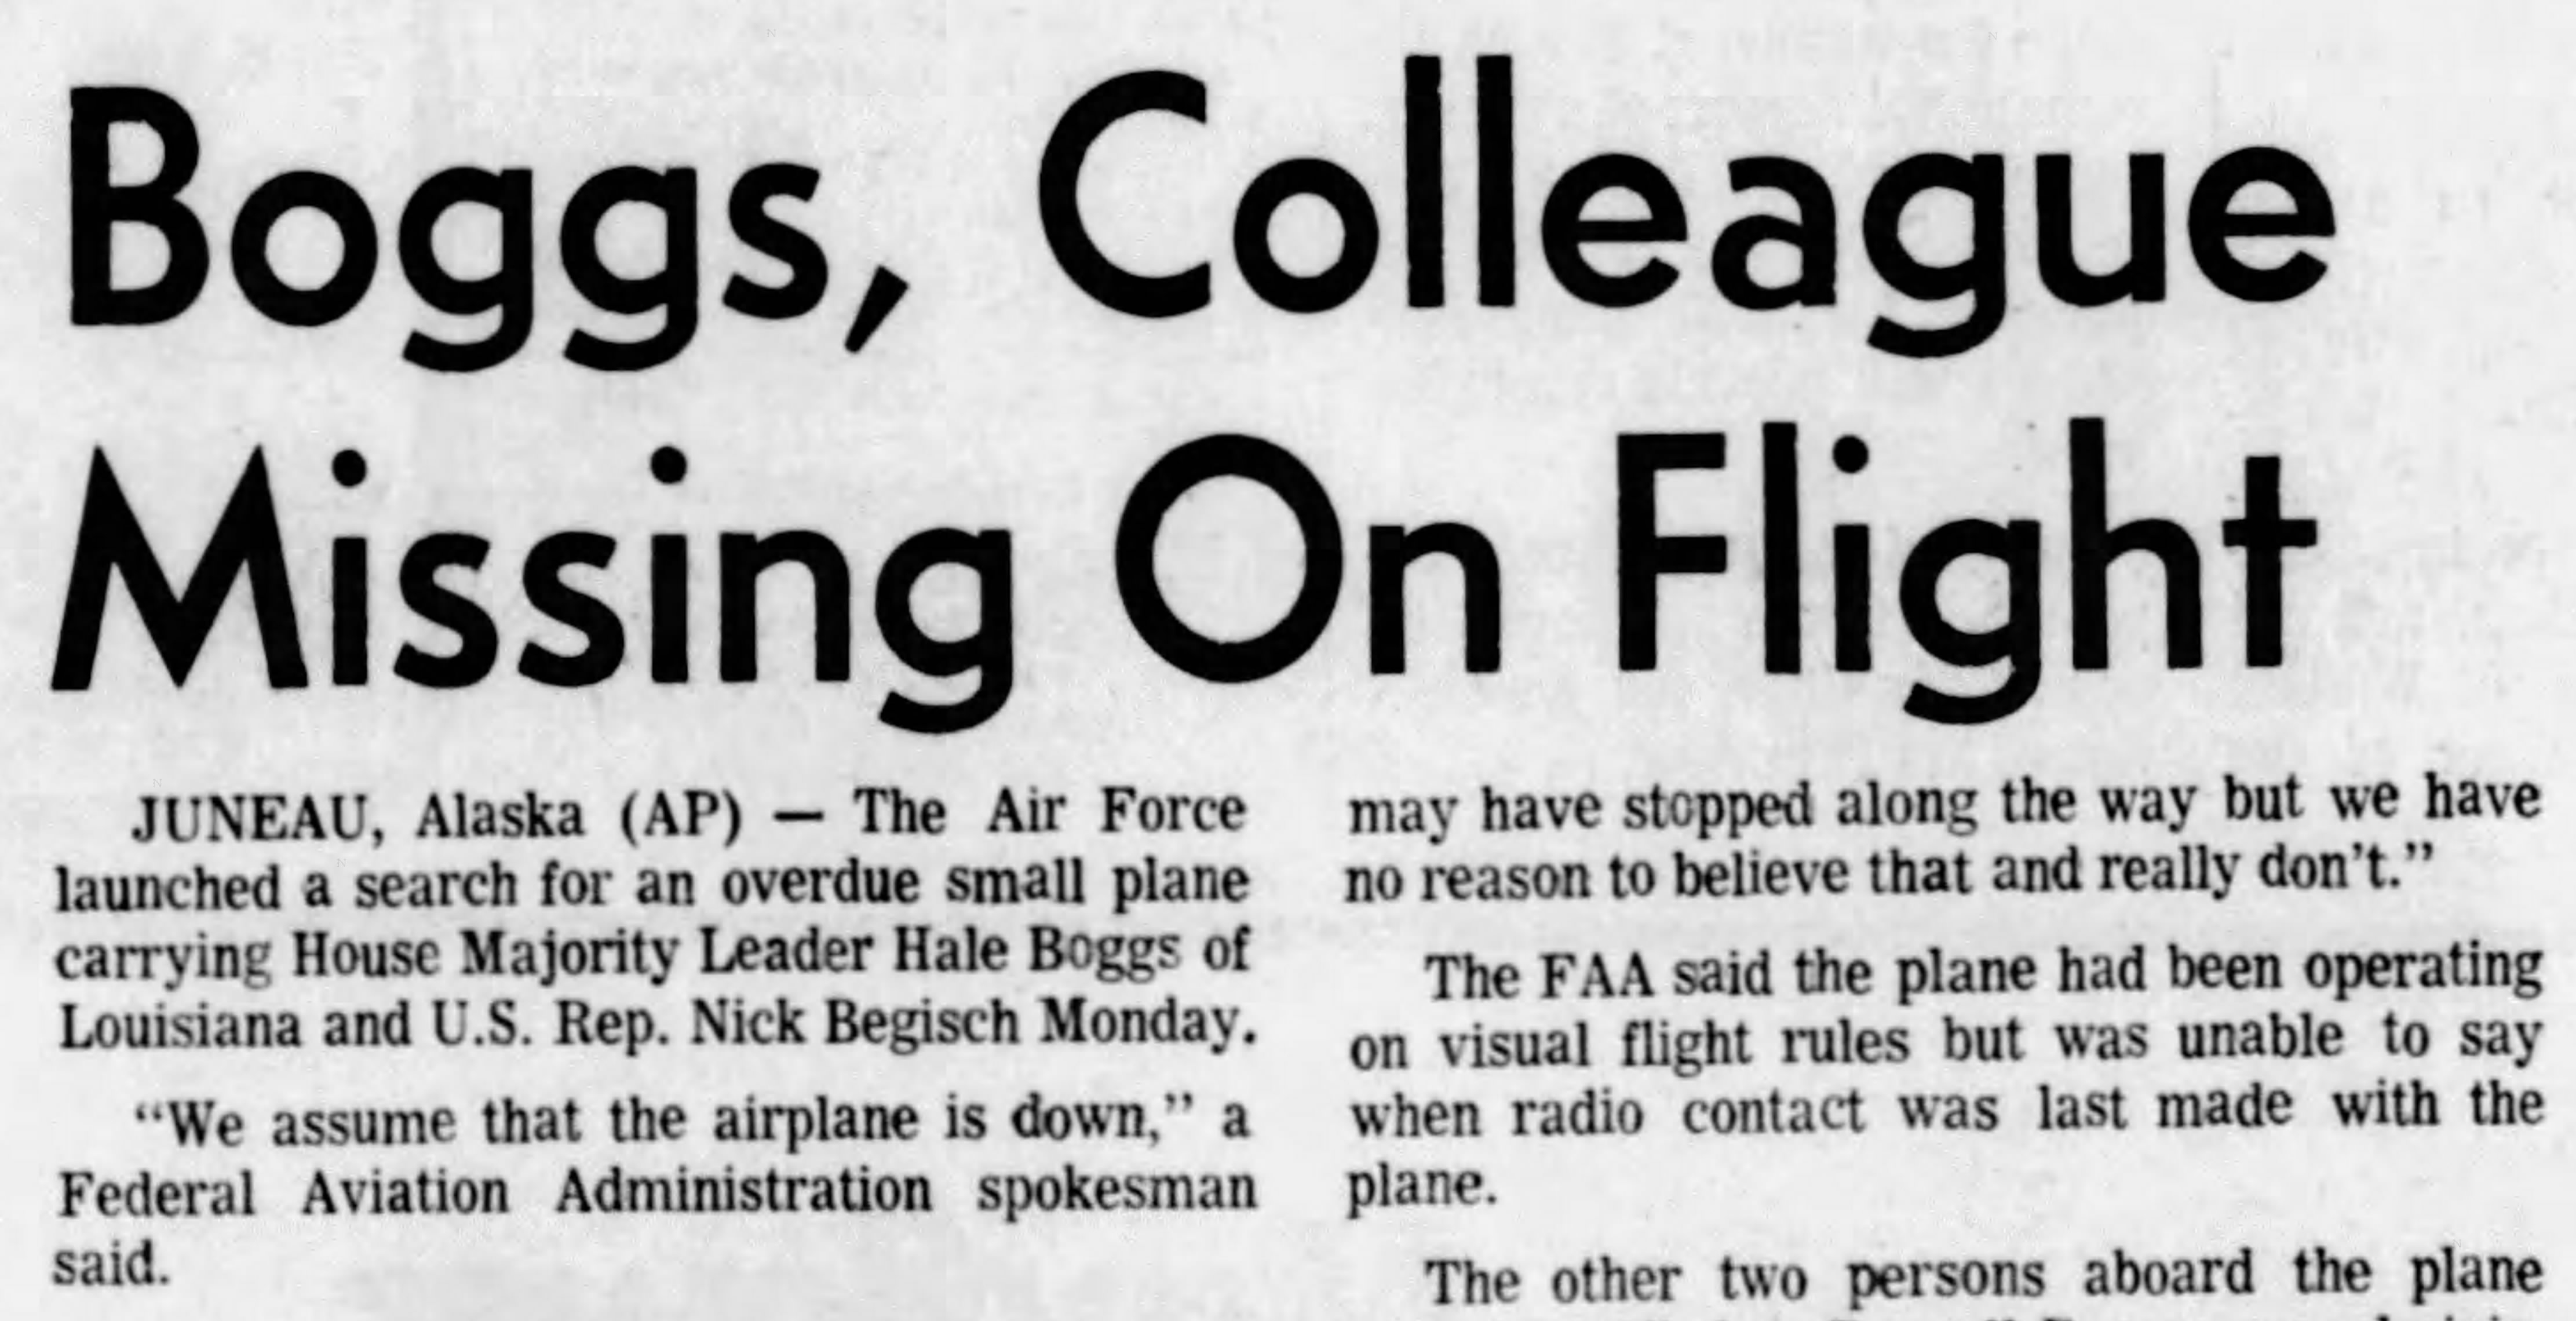 A newspaper clipping about the disappearance of a small plane in Alaska carrying Rep. Hale Boggs (D-La.) along with Rep. Nick Begich, and others, in 1972.